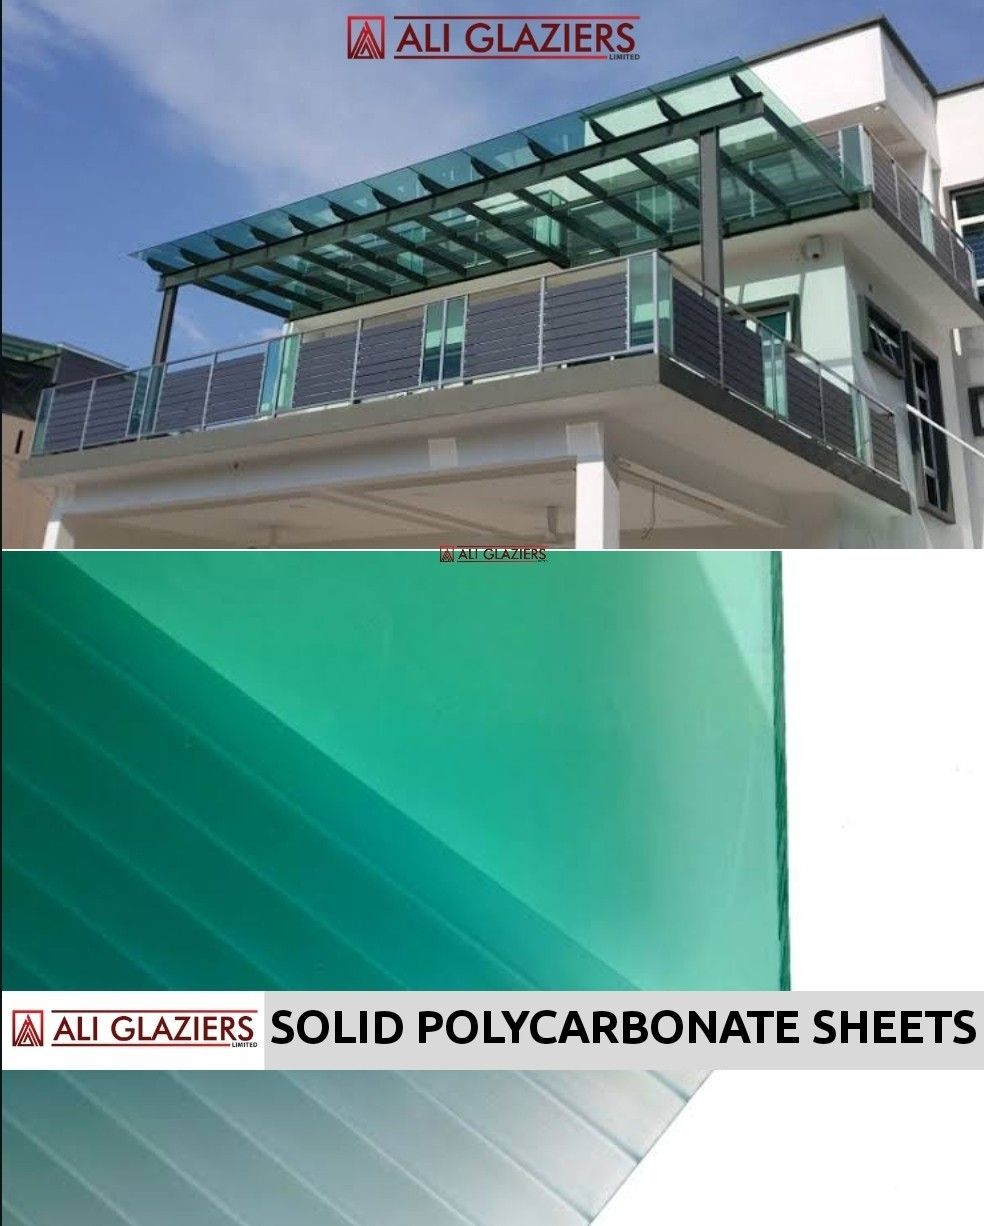 Green Solid Polycarbonate Sheets In Nairobi In 2020 Polycarbonate Nairobi Primary Colors